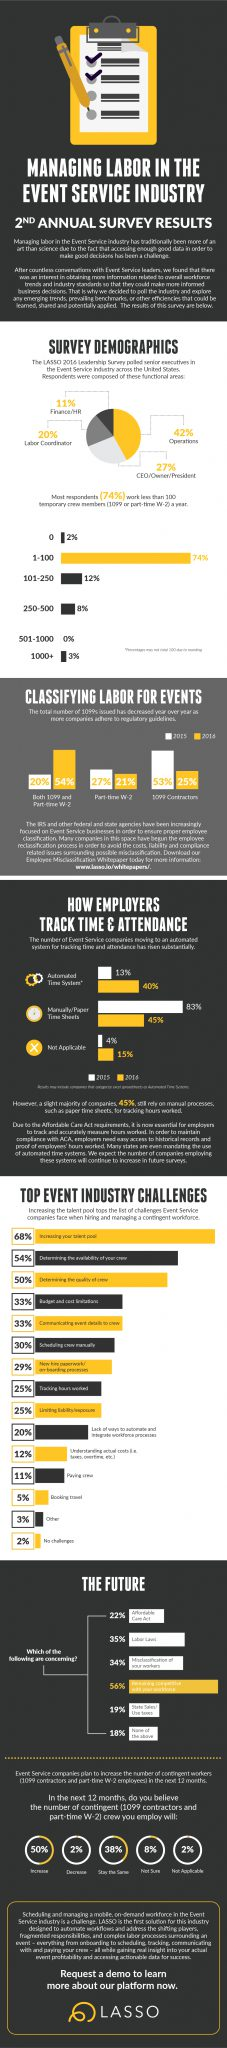 Infographic: Managing Labor in Event Services